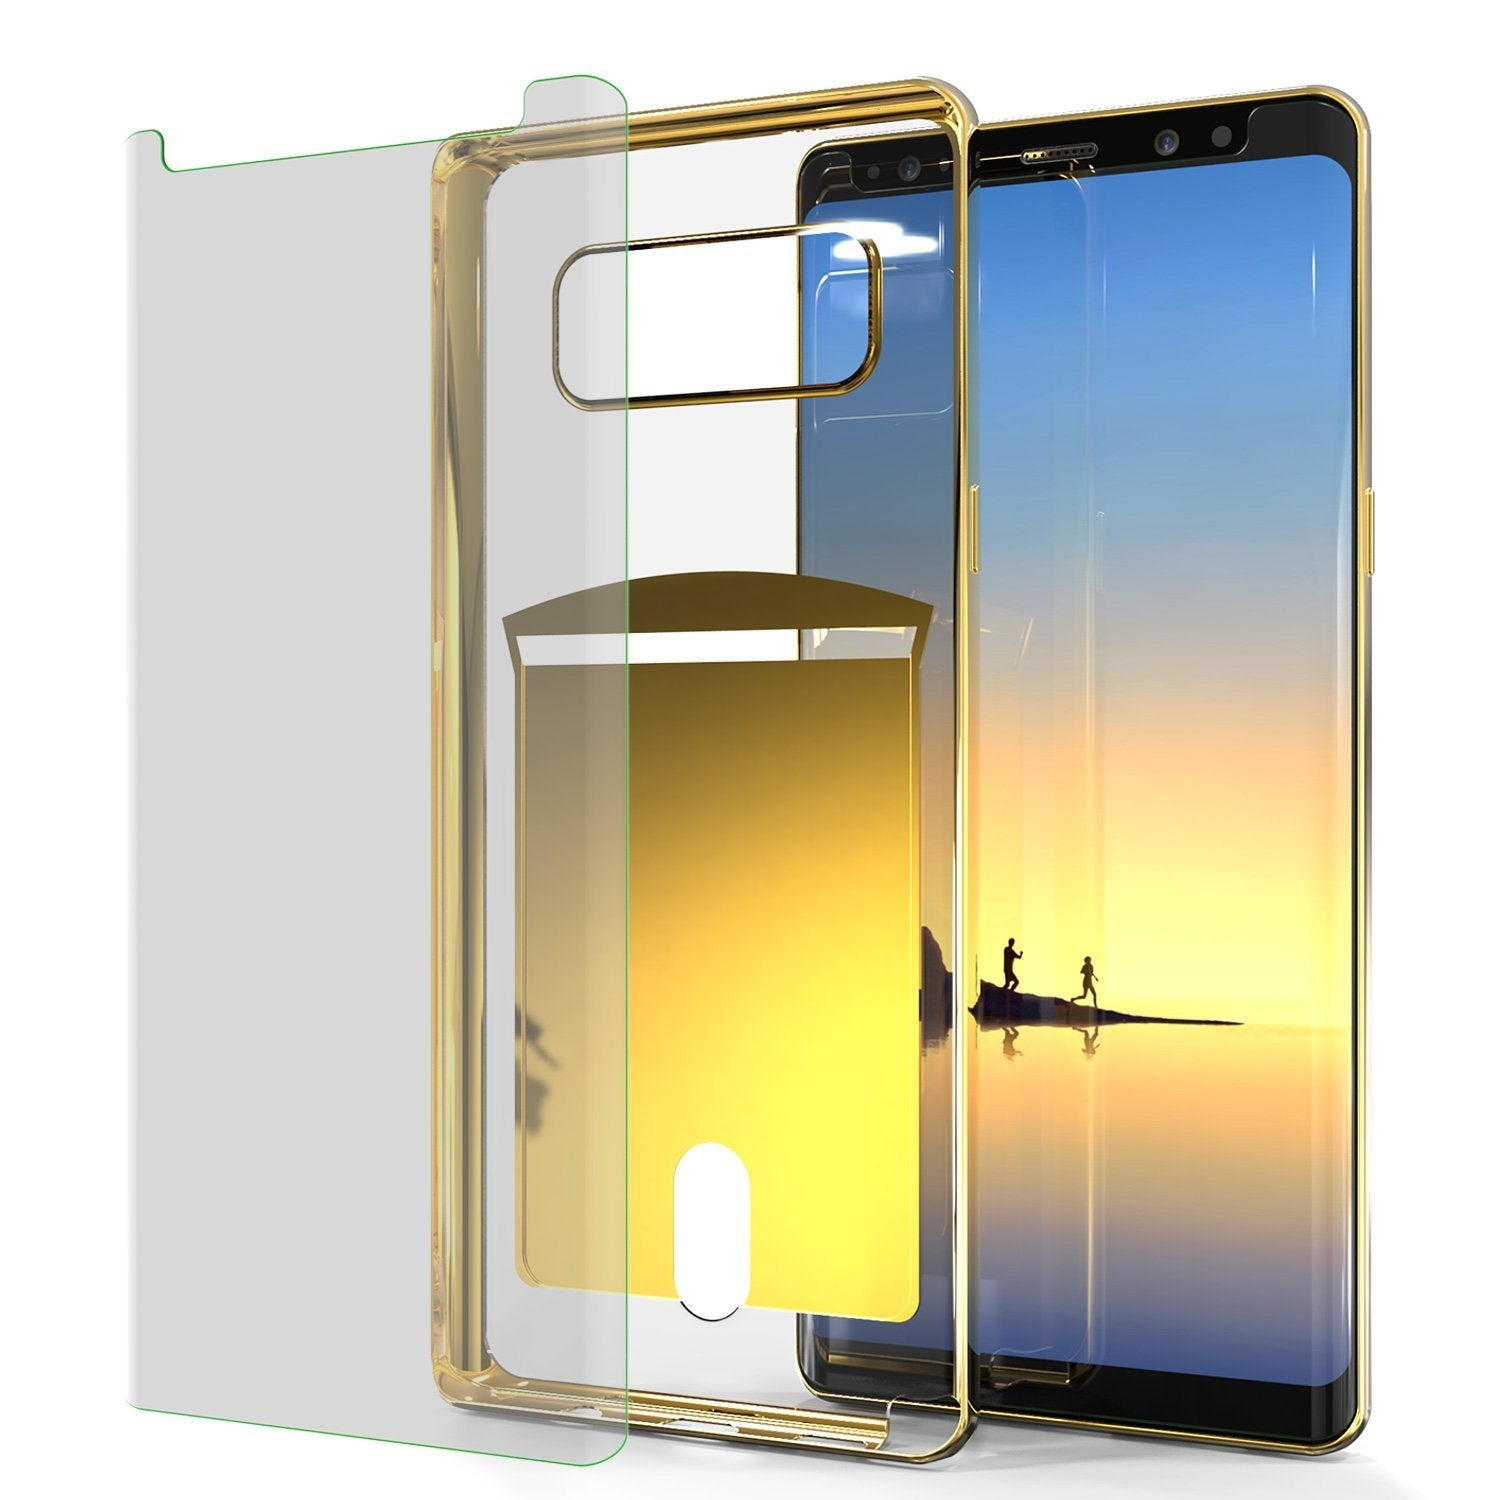 Galaxy Note 8 Case, PUNKCASE® LUCID Gold Series | Card Slot | SHIELD Screen Protector | Ultra fit